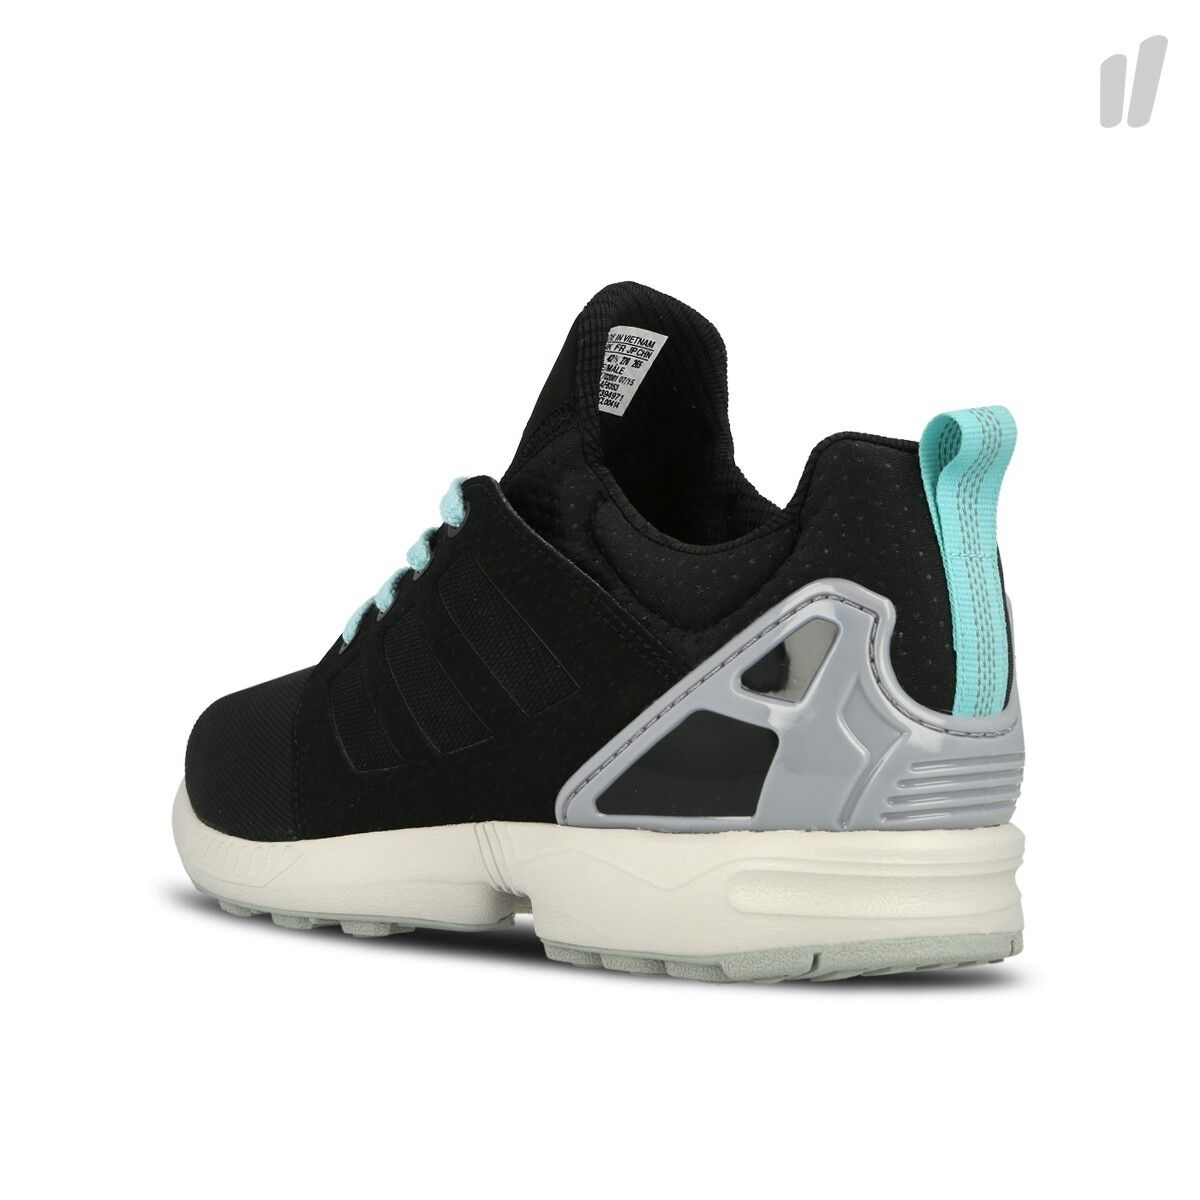 ADIDAS ADIDAS ADIDAS ZX Flux NPS UPDT HombreS Zapatos SNEAKERS AF6353 f8f535